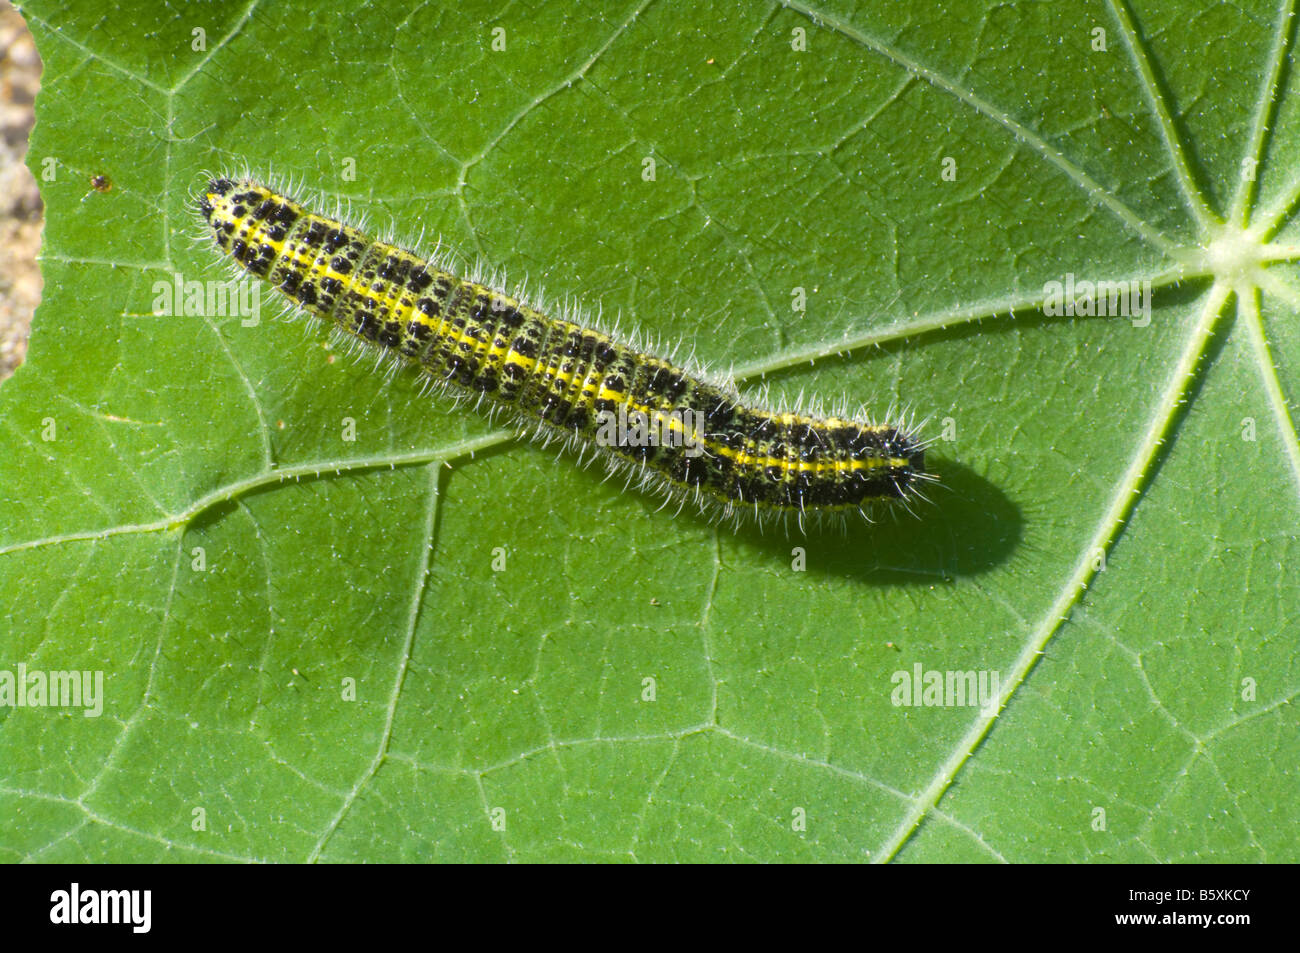 Cabbage White Butterfly Caterpillar on a Nasturtium Leaf - Stock Image